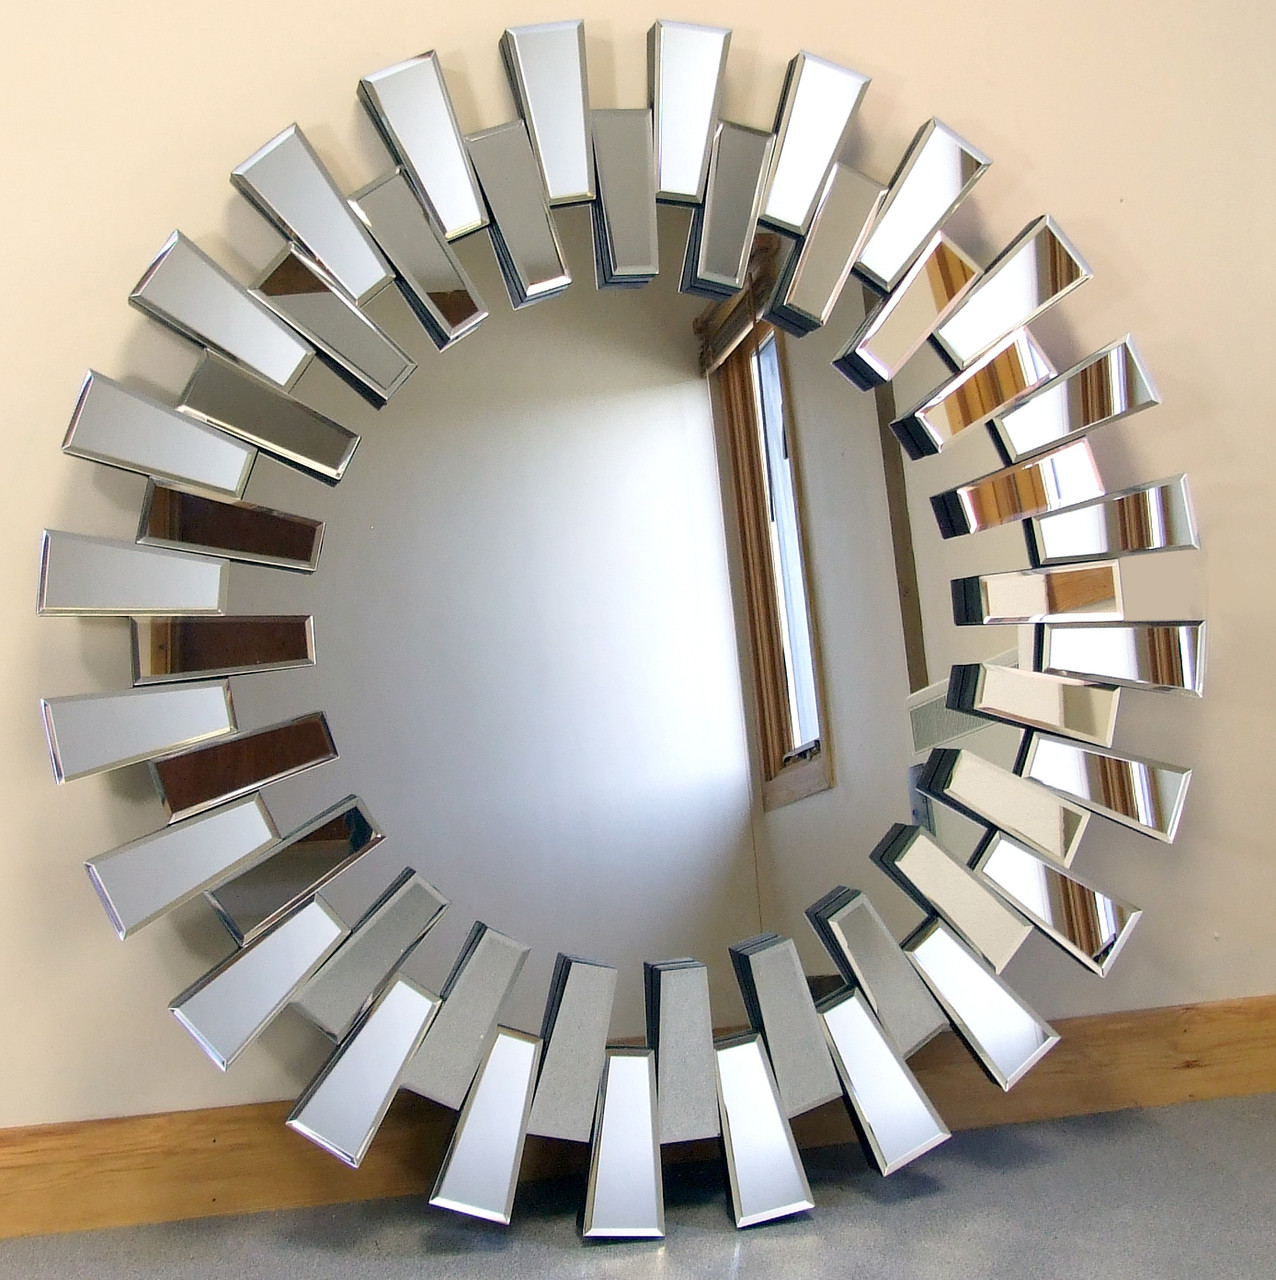 Chelsea Art Deco Bevelled Venetian Round Wall Mirror 39 Diameter